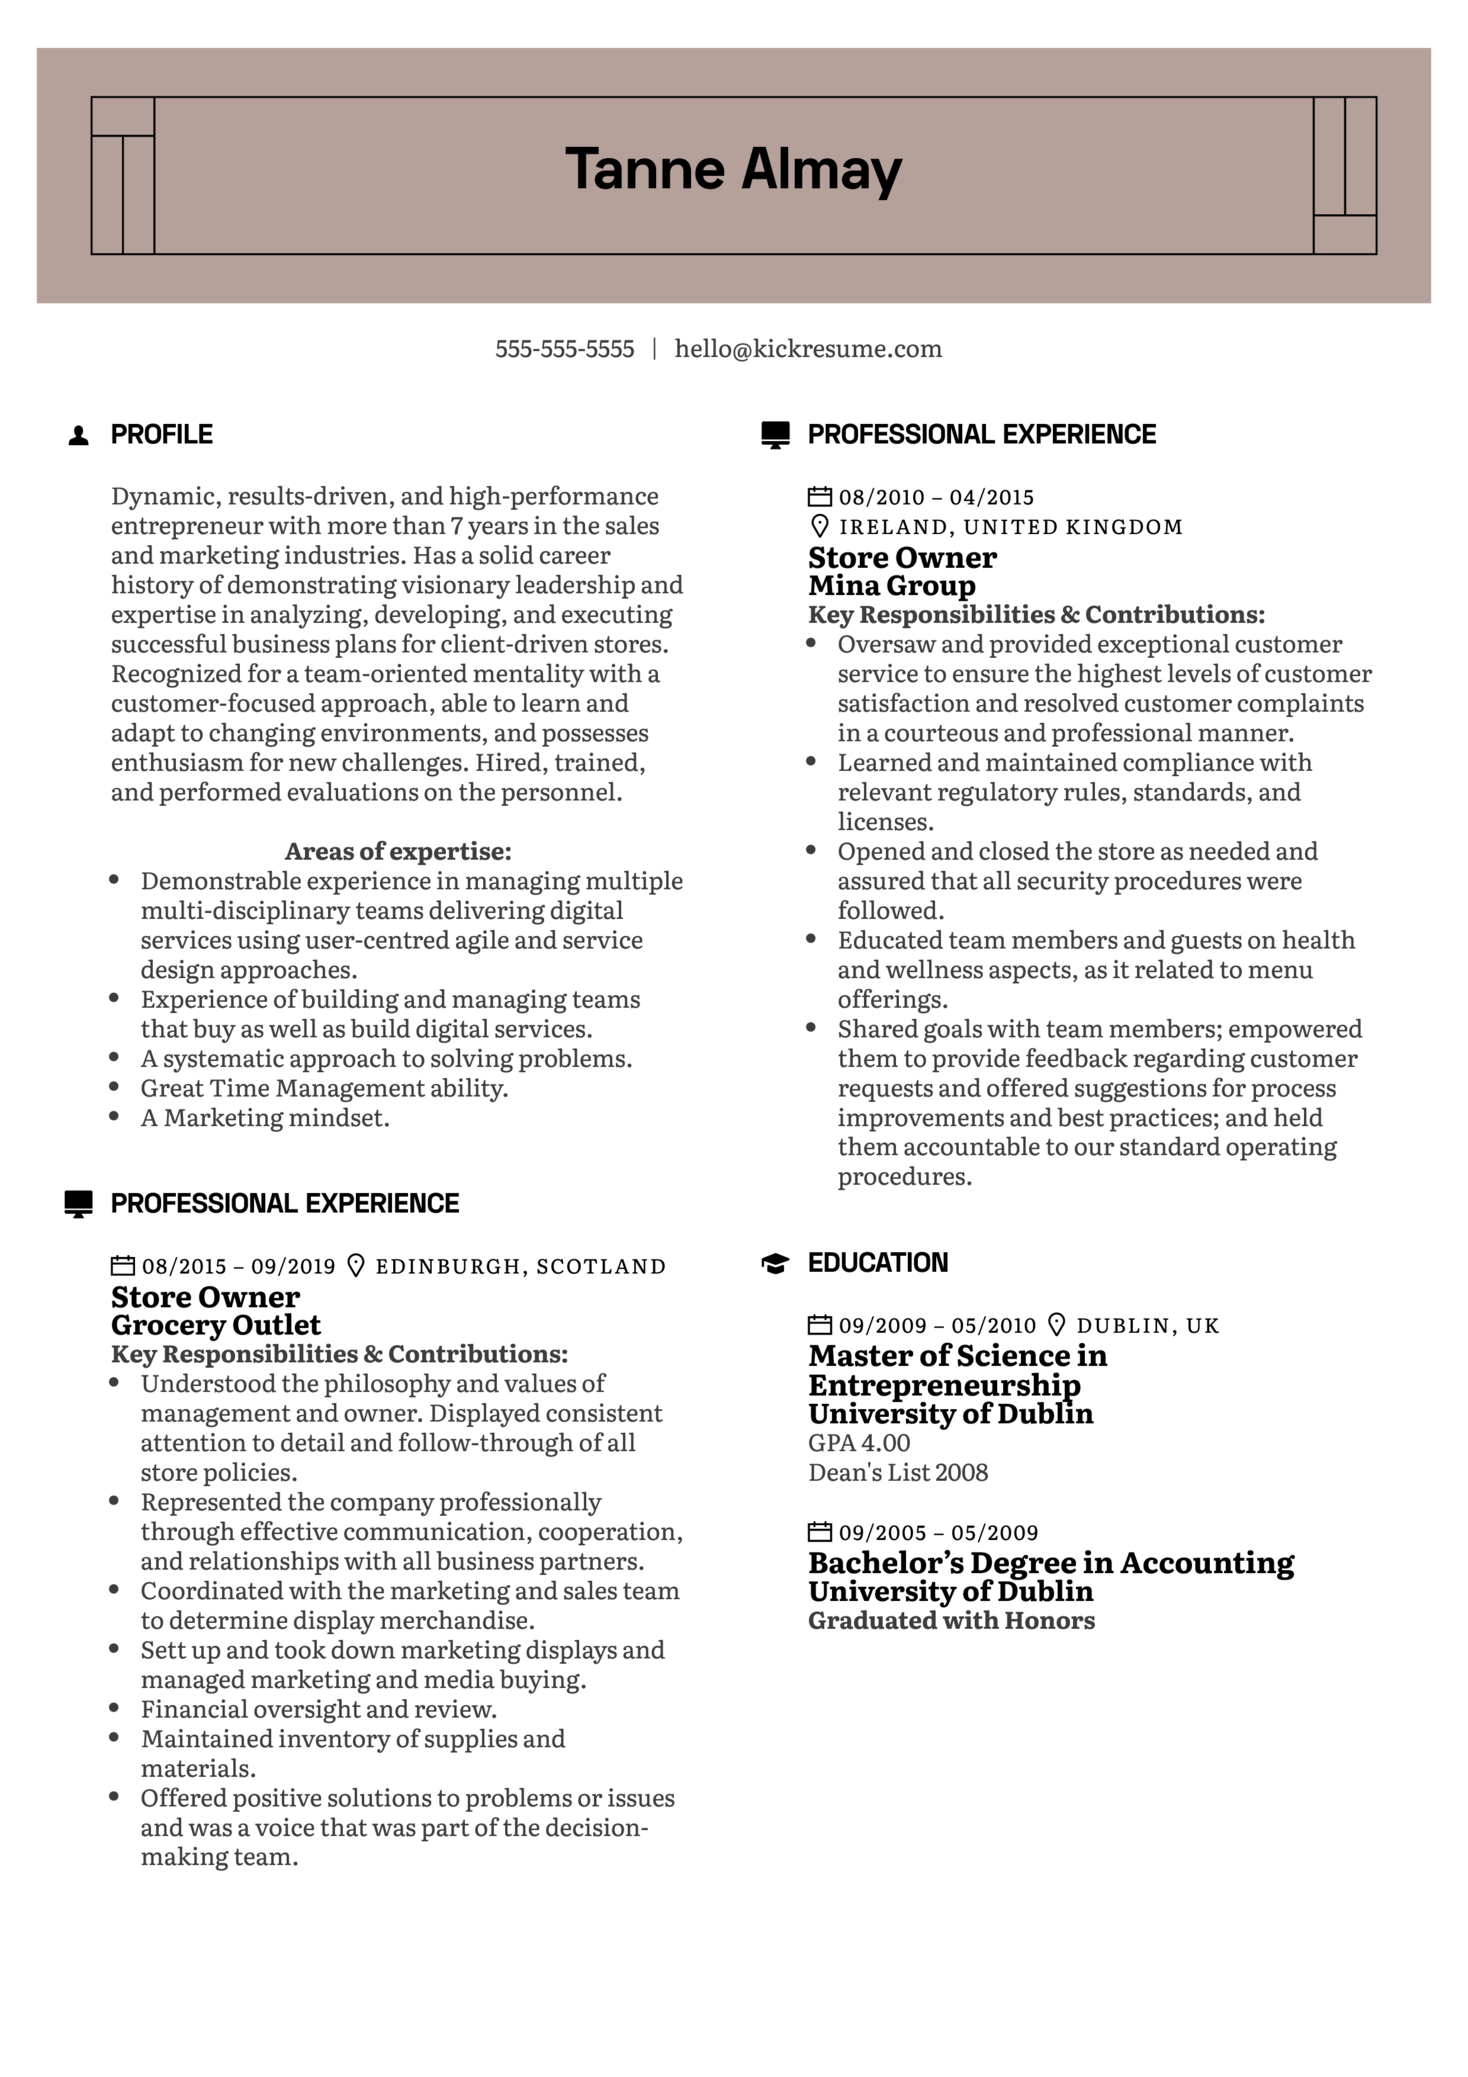 resume examples by real people  store owner resume example